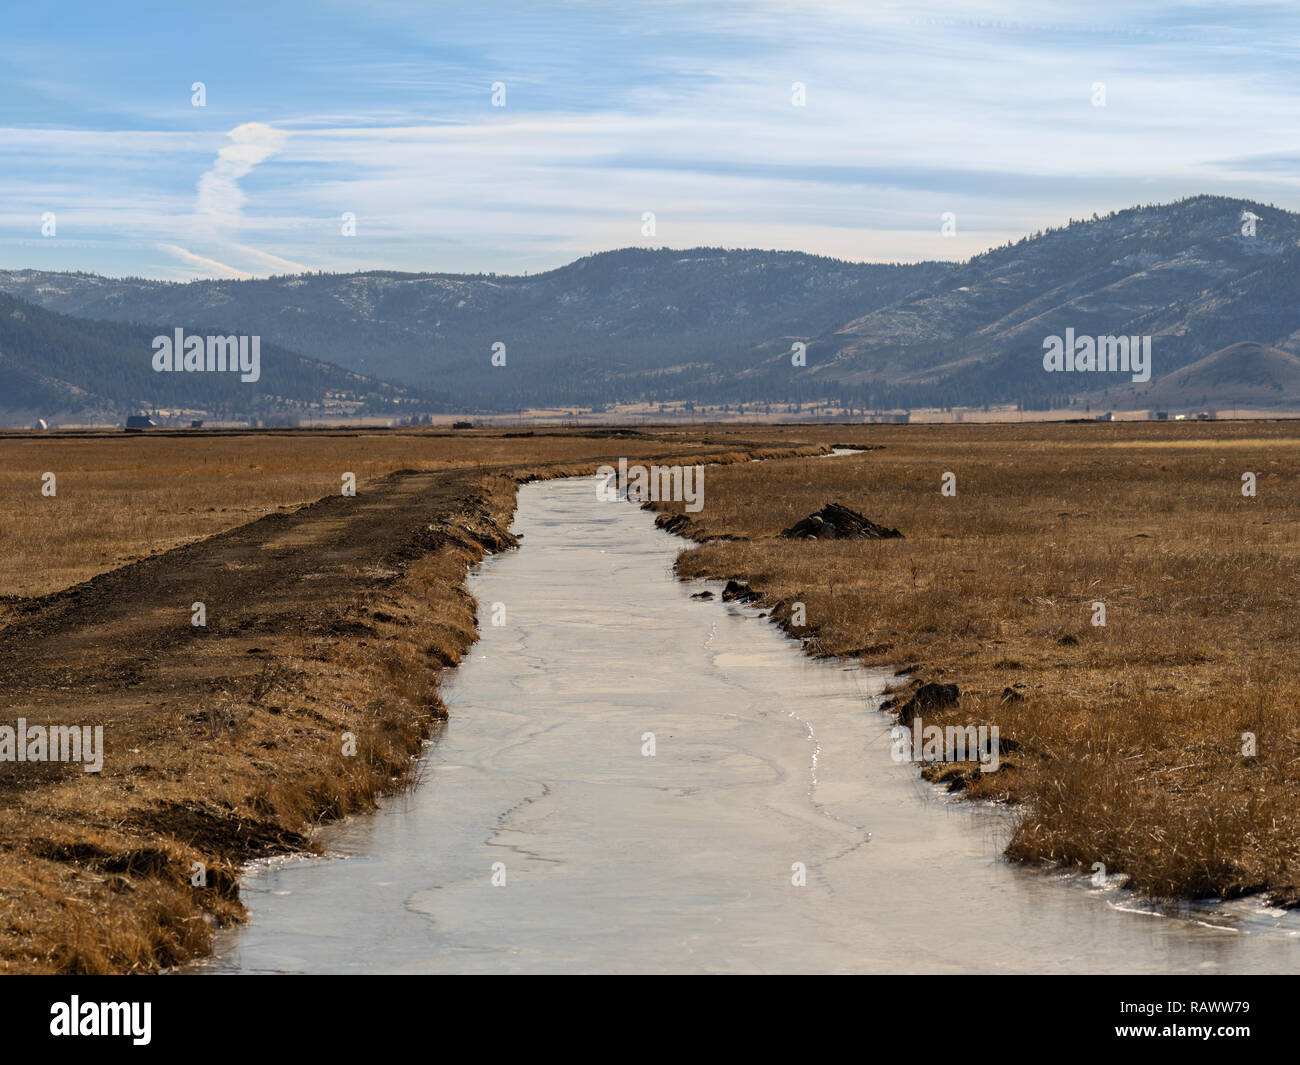 Frozen Irrigation ditch or canal leading away towards some distant mountains. - Stock Image